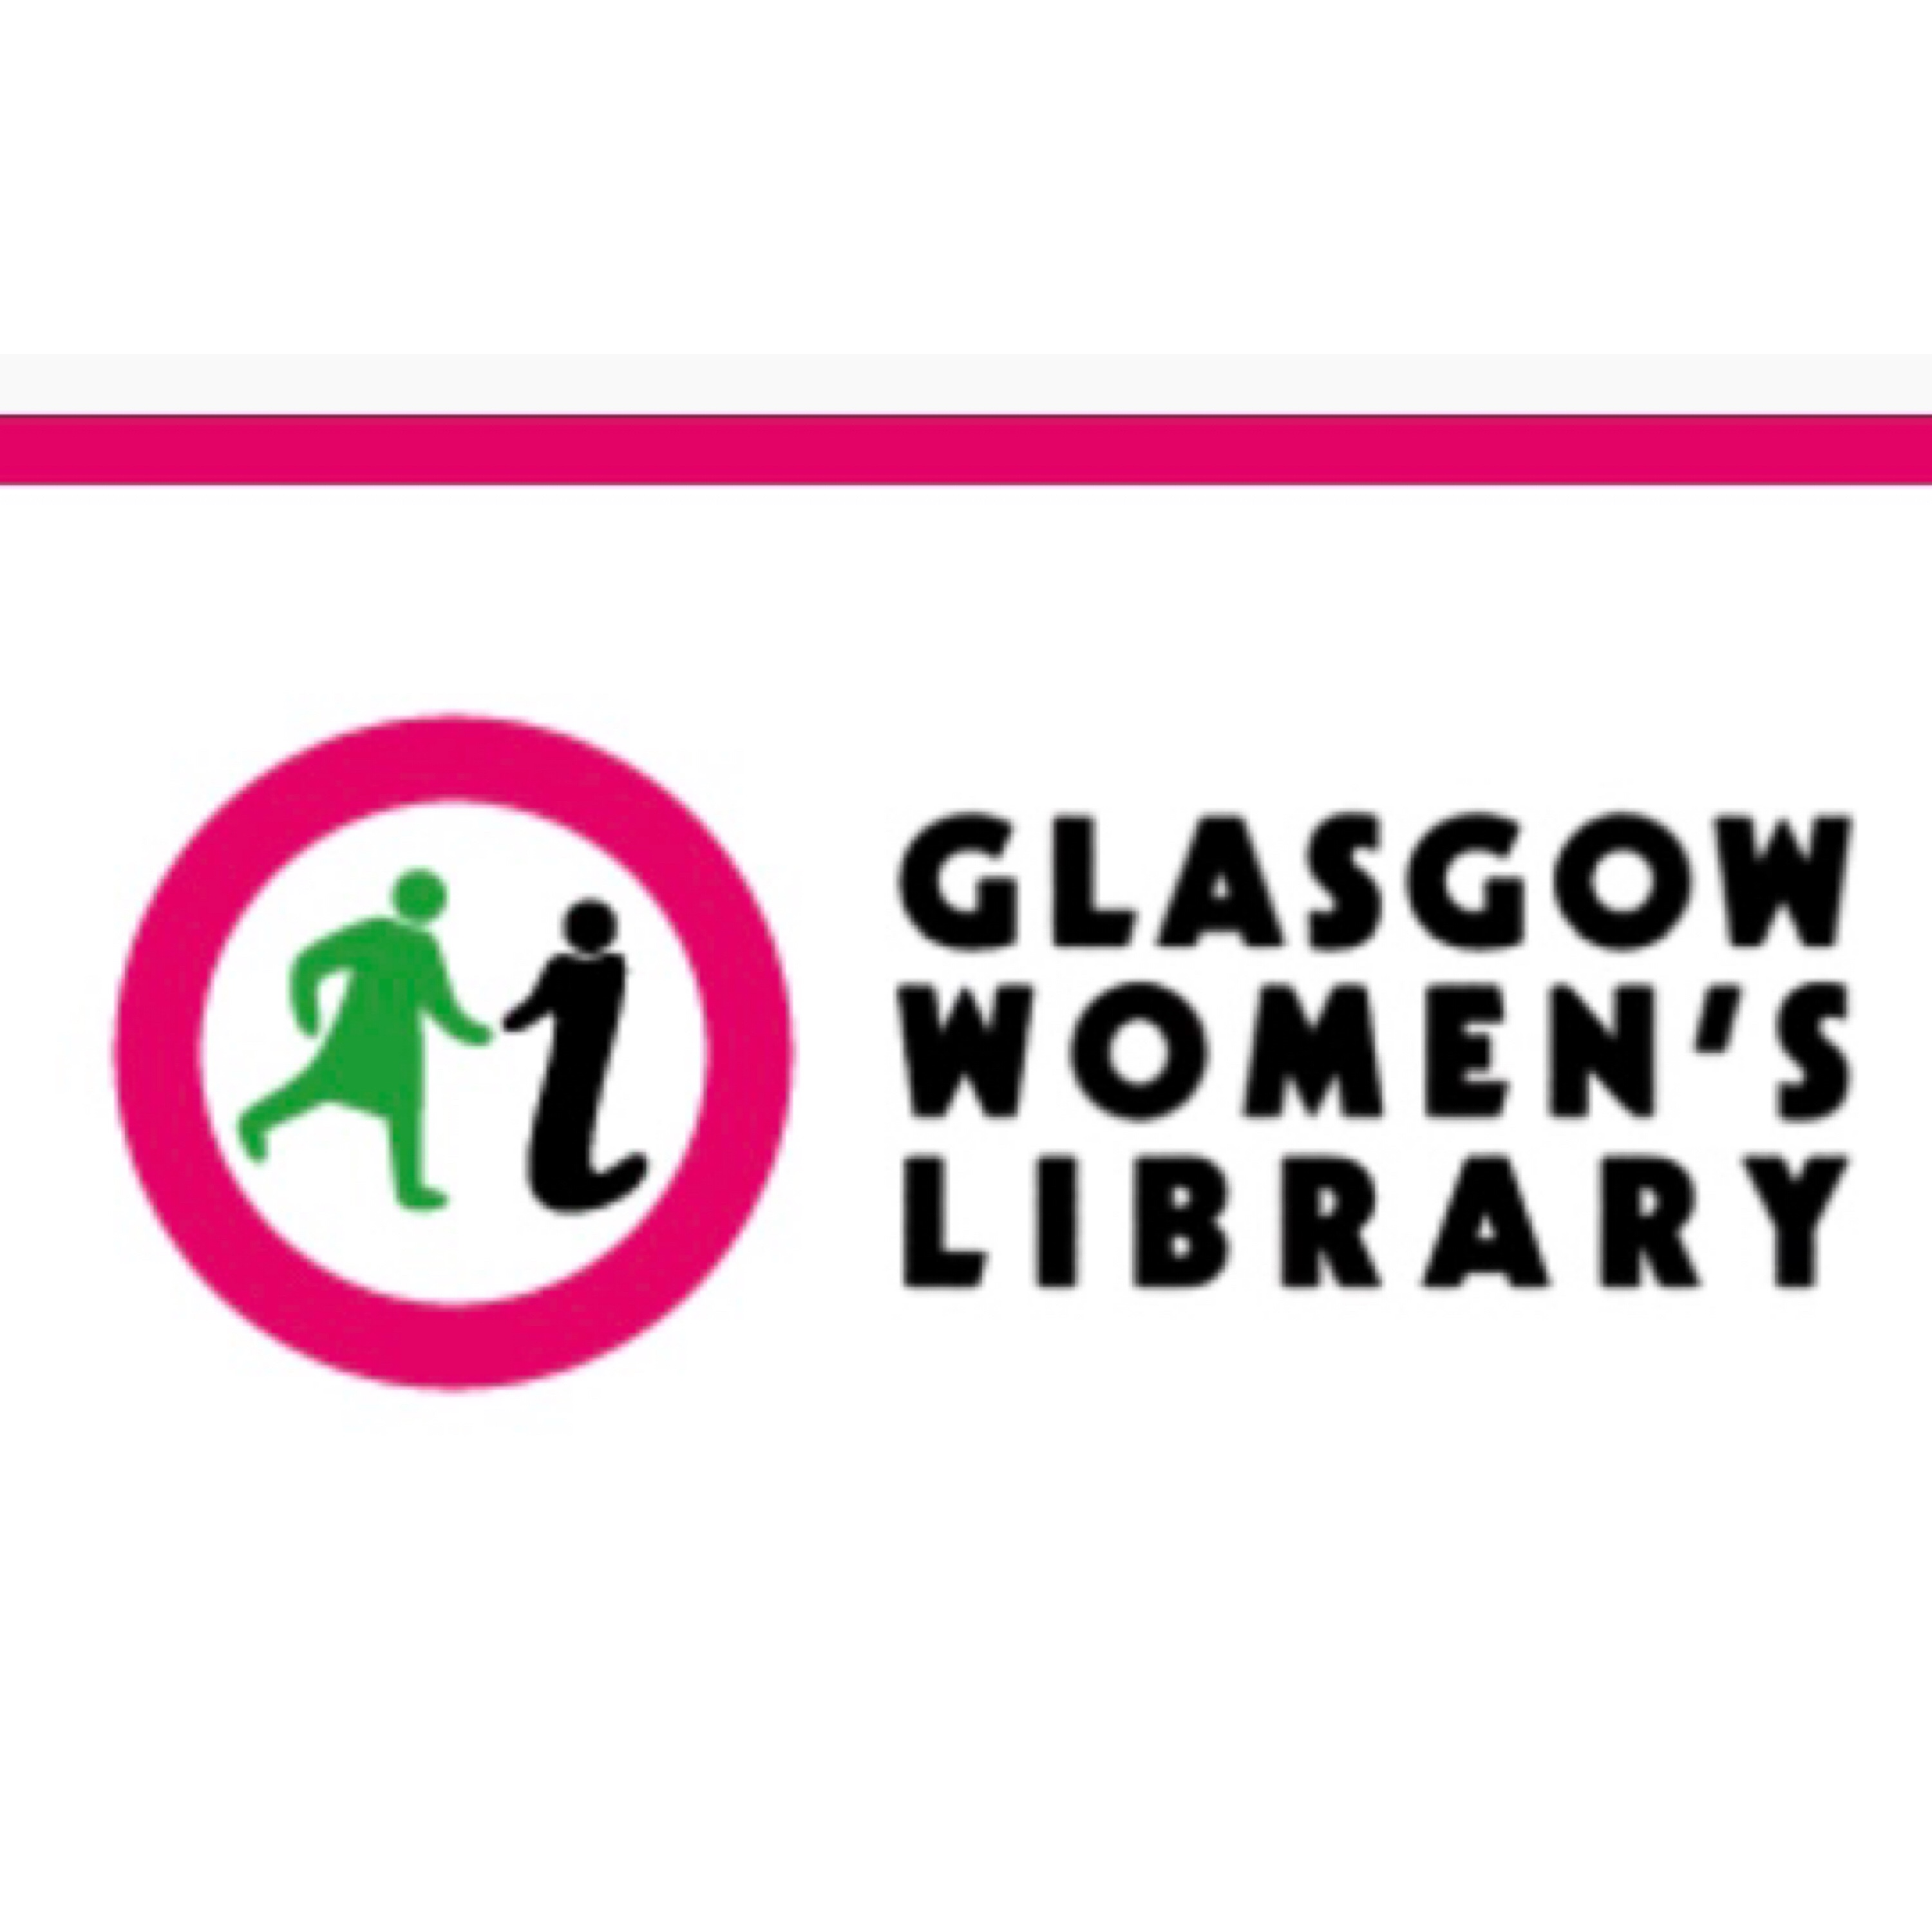 Glasgow Women's library logo